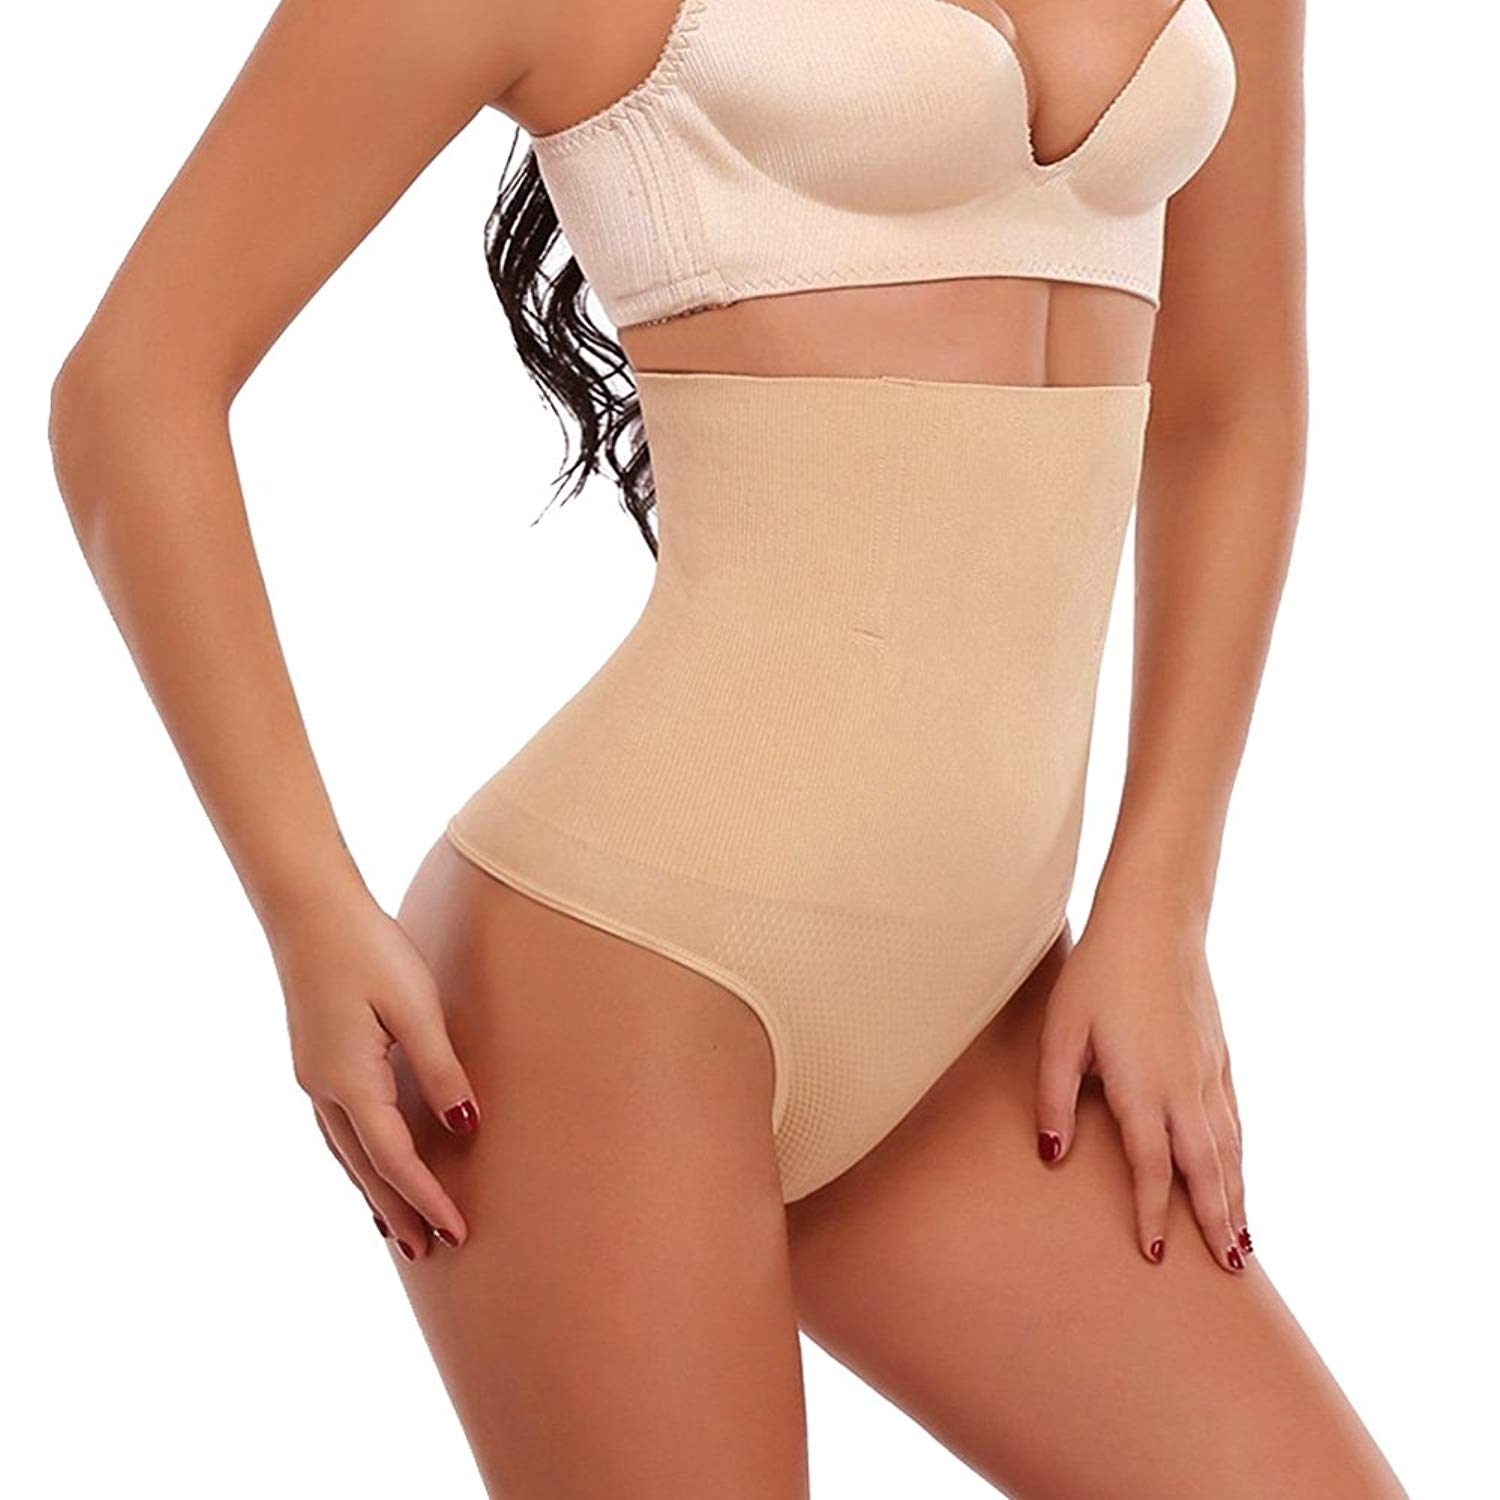 2e37715a986 Get Quotations · 3-5 Day Delivery High Waist Women s Thong Shapewear Butt  Lifter Tummy Control Panty